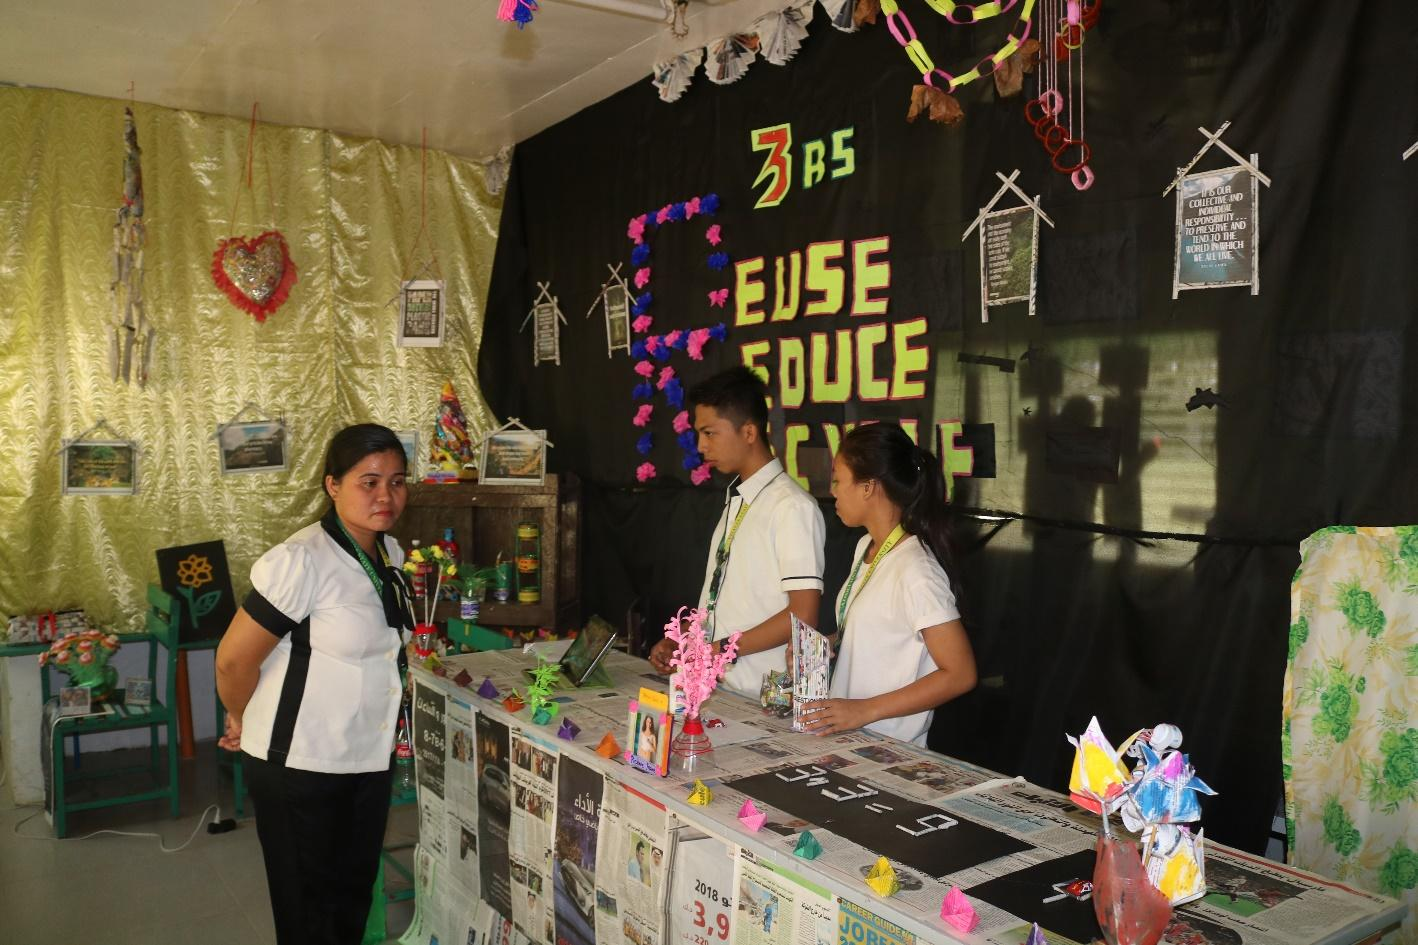 AT A GLANCE. BSEd students actively participating in the Science Fair